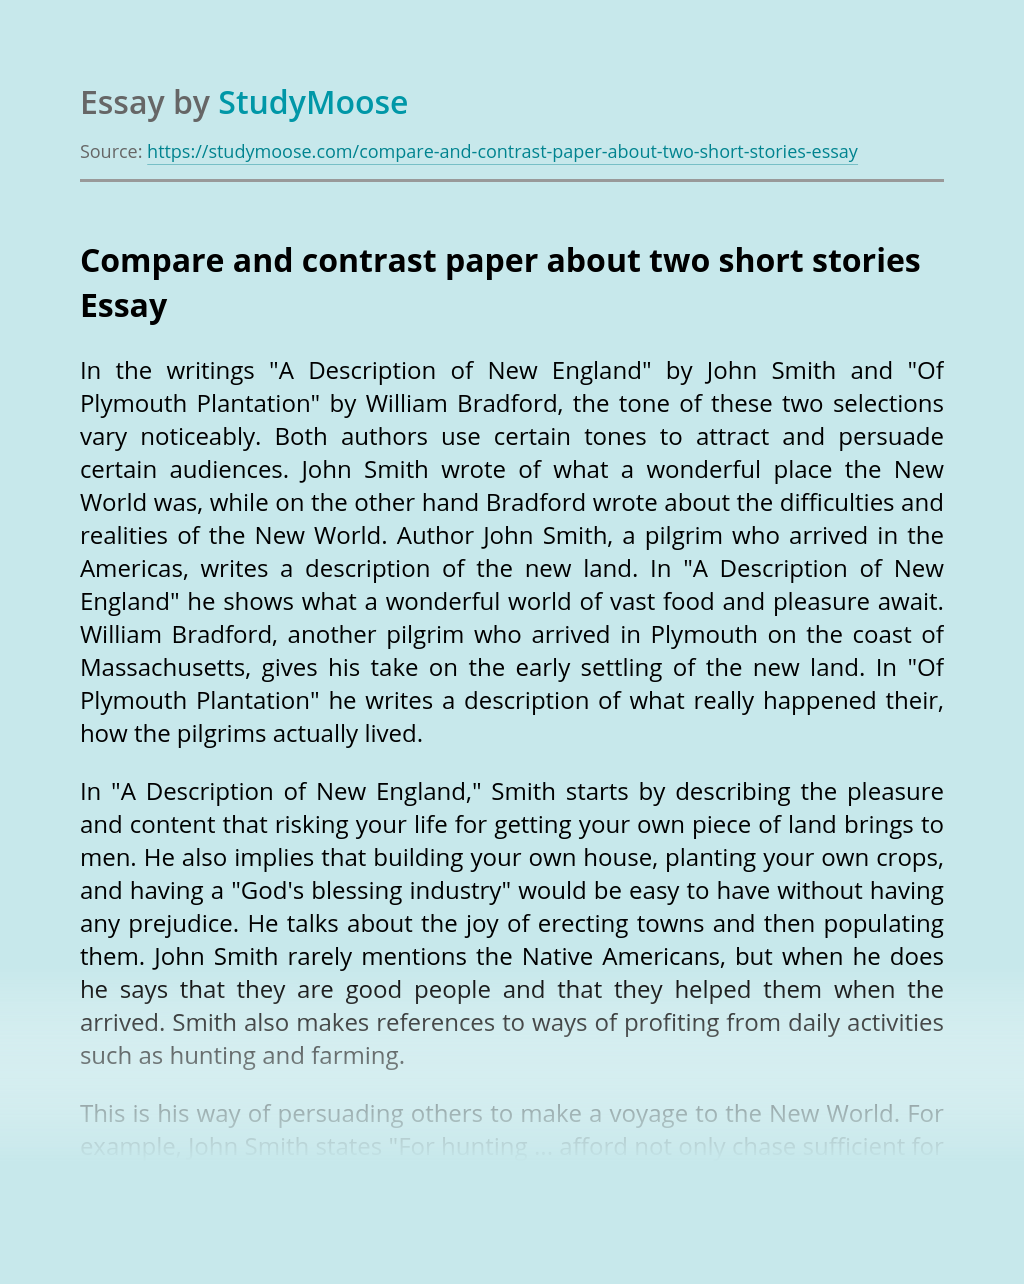 Compare and contrast paper about two short stories